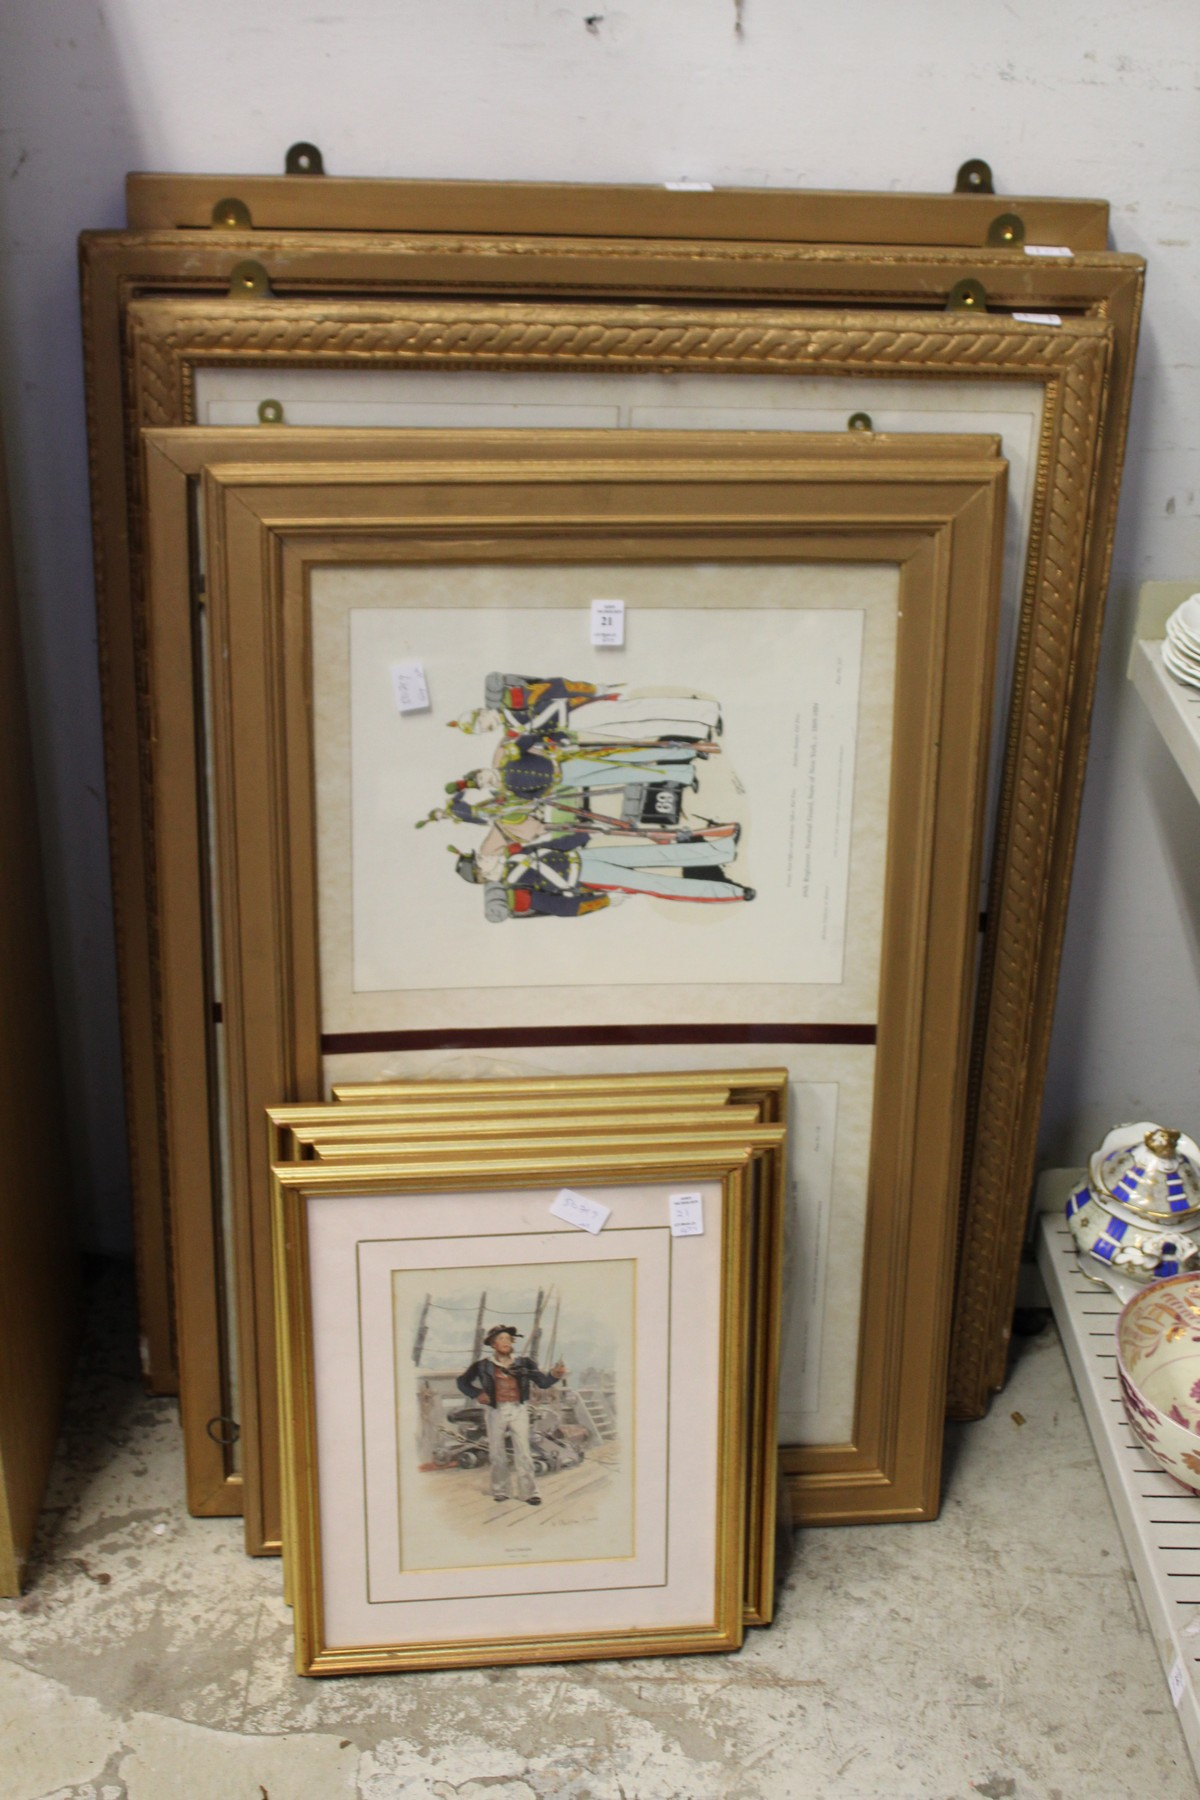 A quantity of military and naval figural prints, framed and glazed.